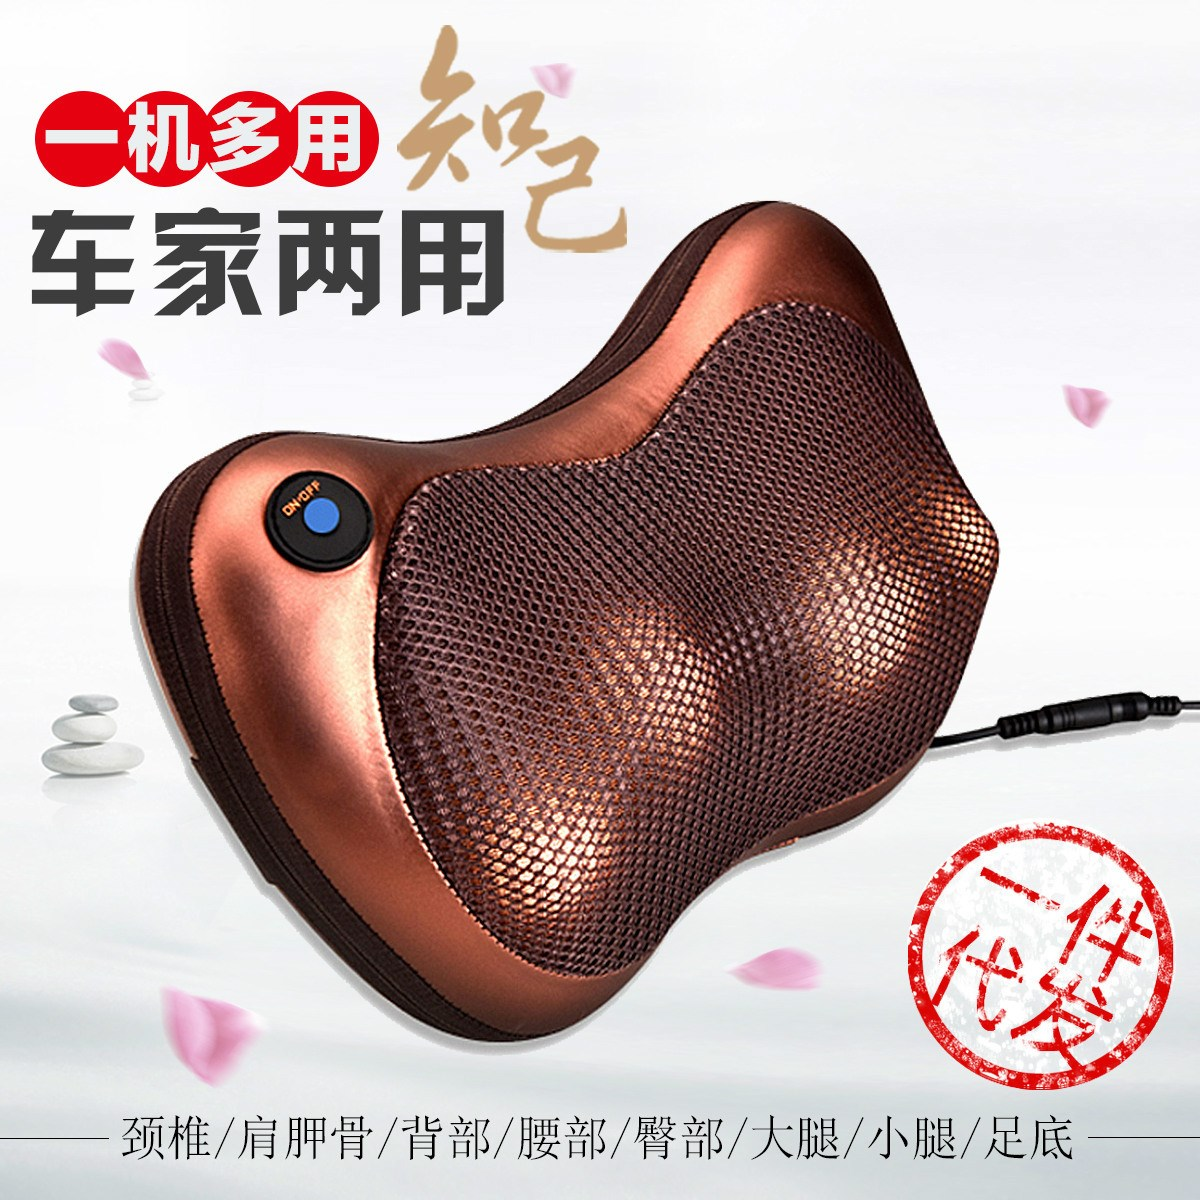 Cervical massage device, neck, waist, back body electric multi-function massage pillow, home cushion car